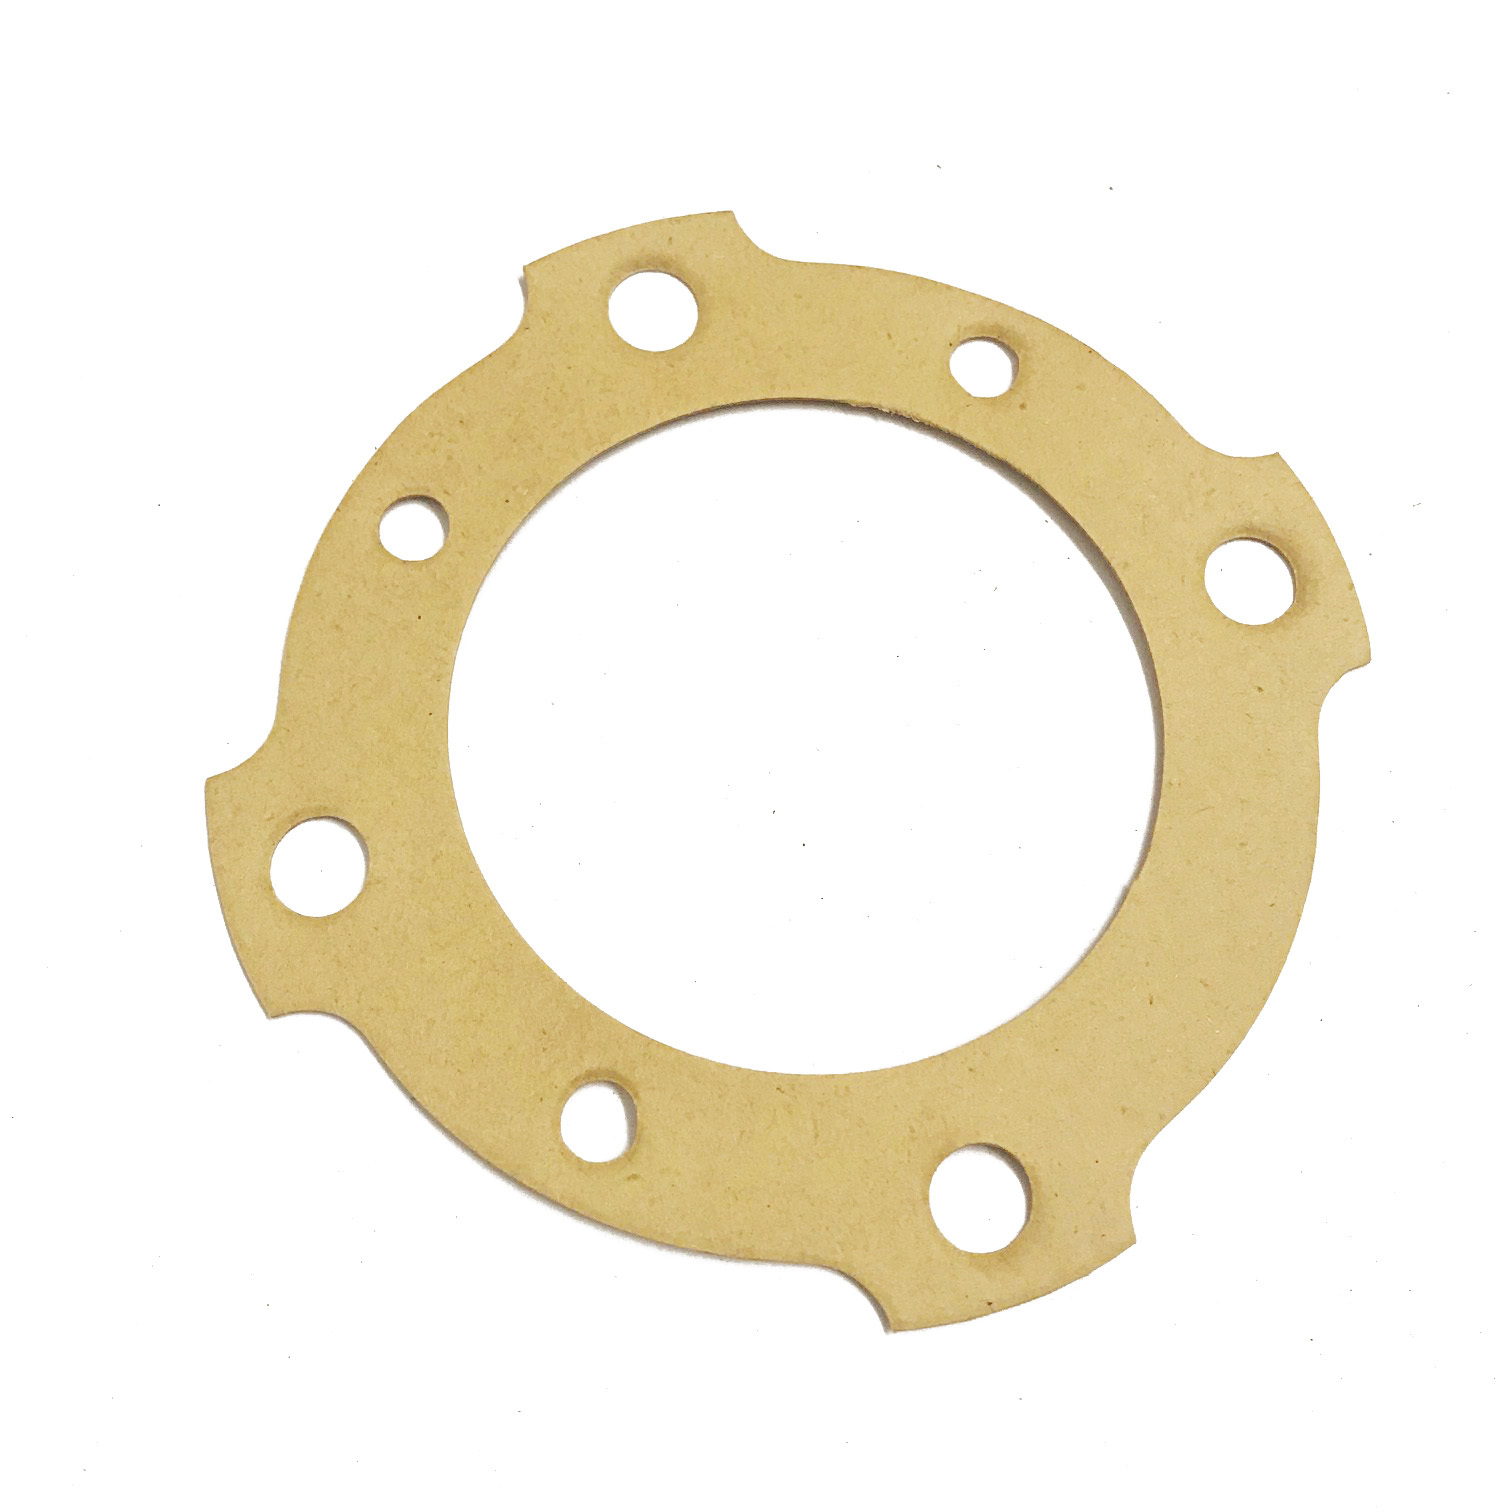 GASKET - drive shaft flange to hub - MG Midget Sprite Minor AXA104